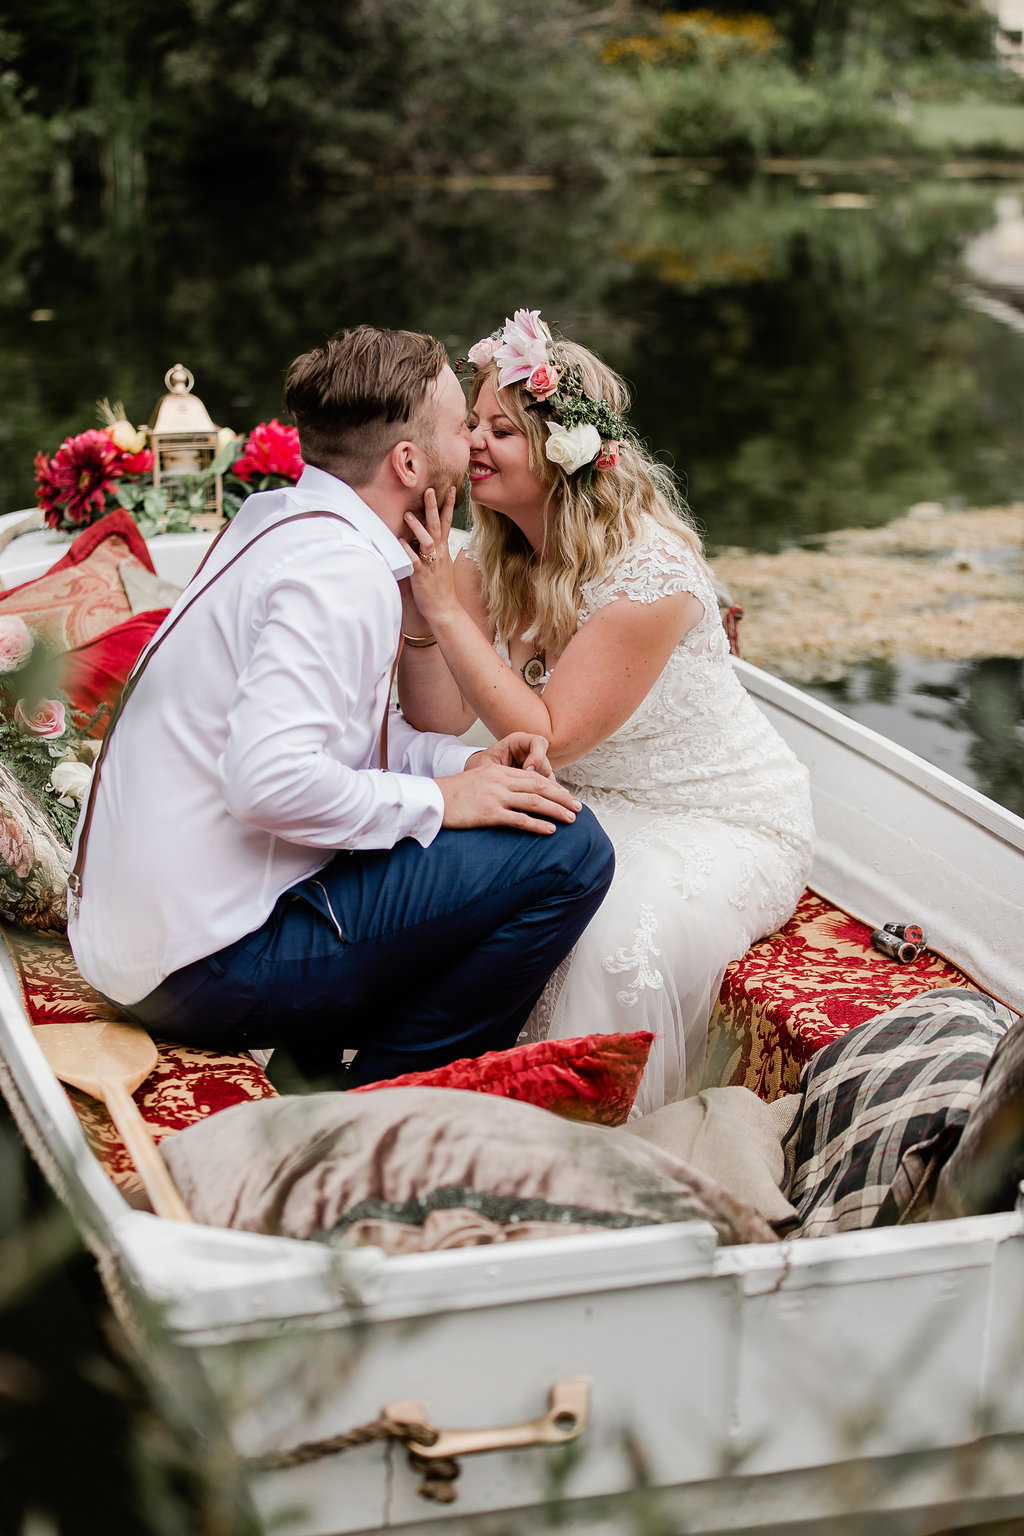 Our refurbished boat was a labour of love. We hauled it out of a field where it had been sitting for years but with a good long power wash and coat of paint, we turned it into a romantic setting for some of our best wedding pictures. Couch cushions thrown in on the day of made it even better!